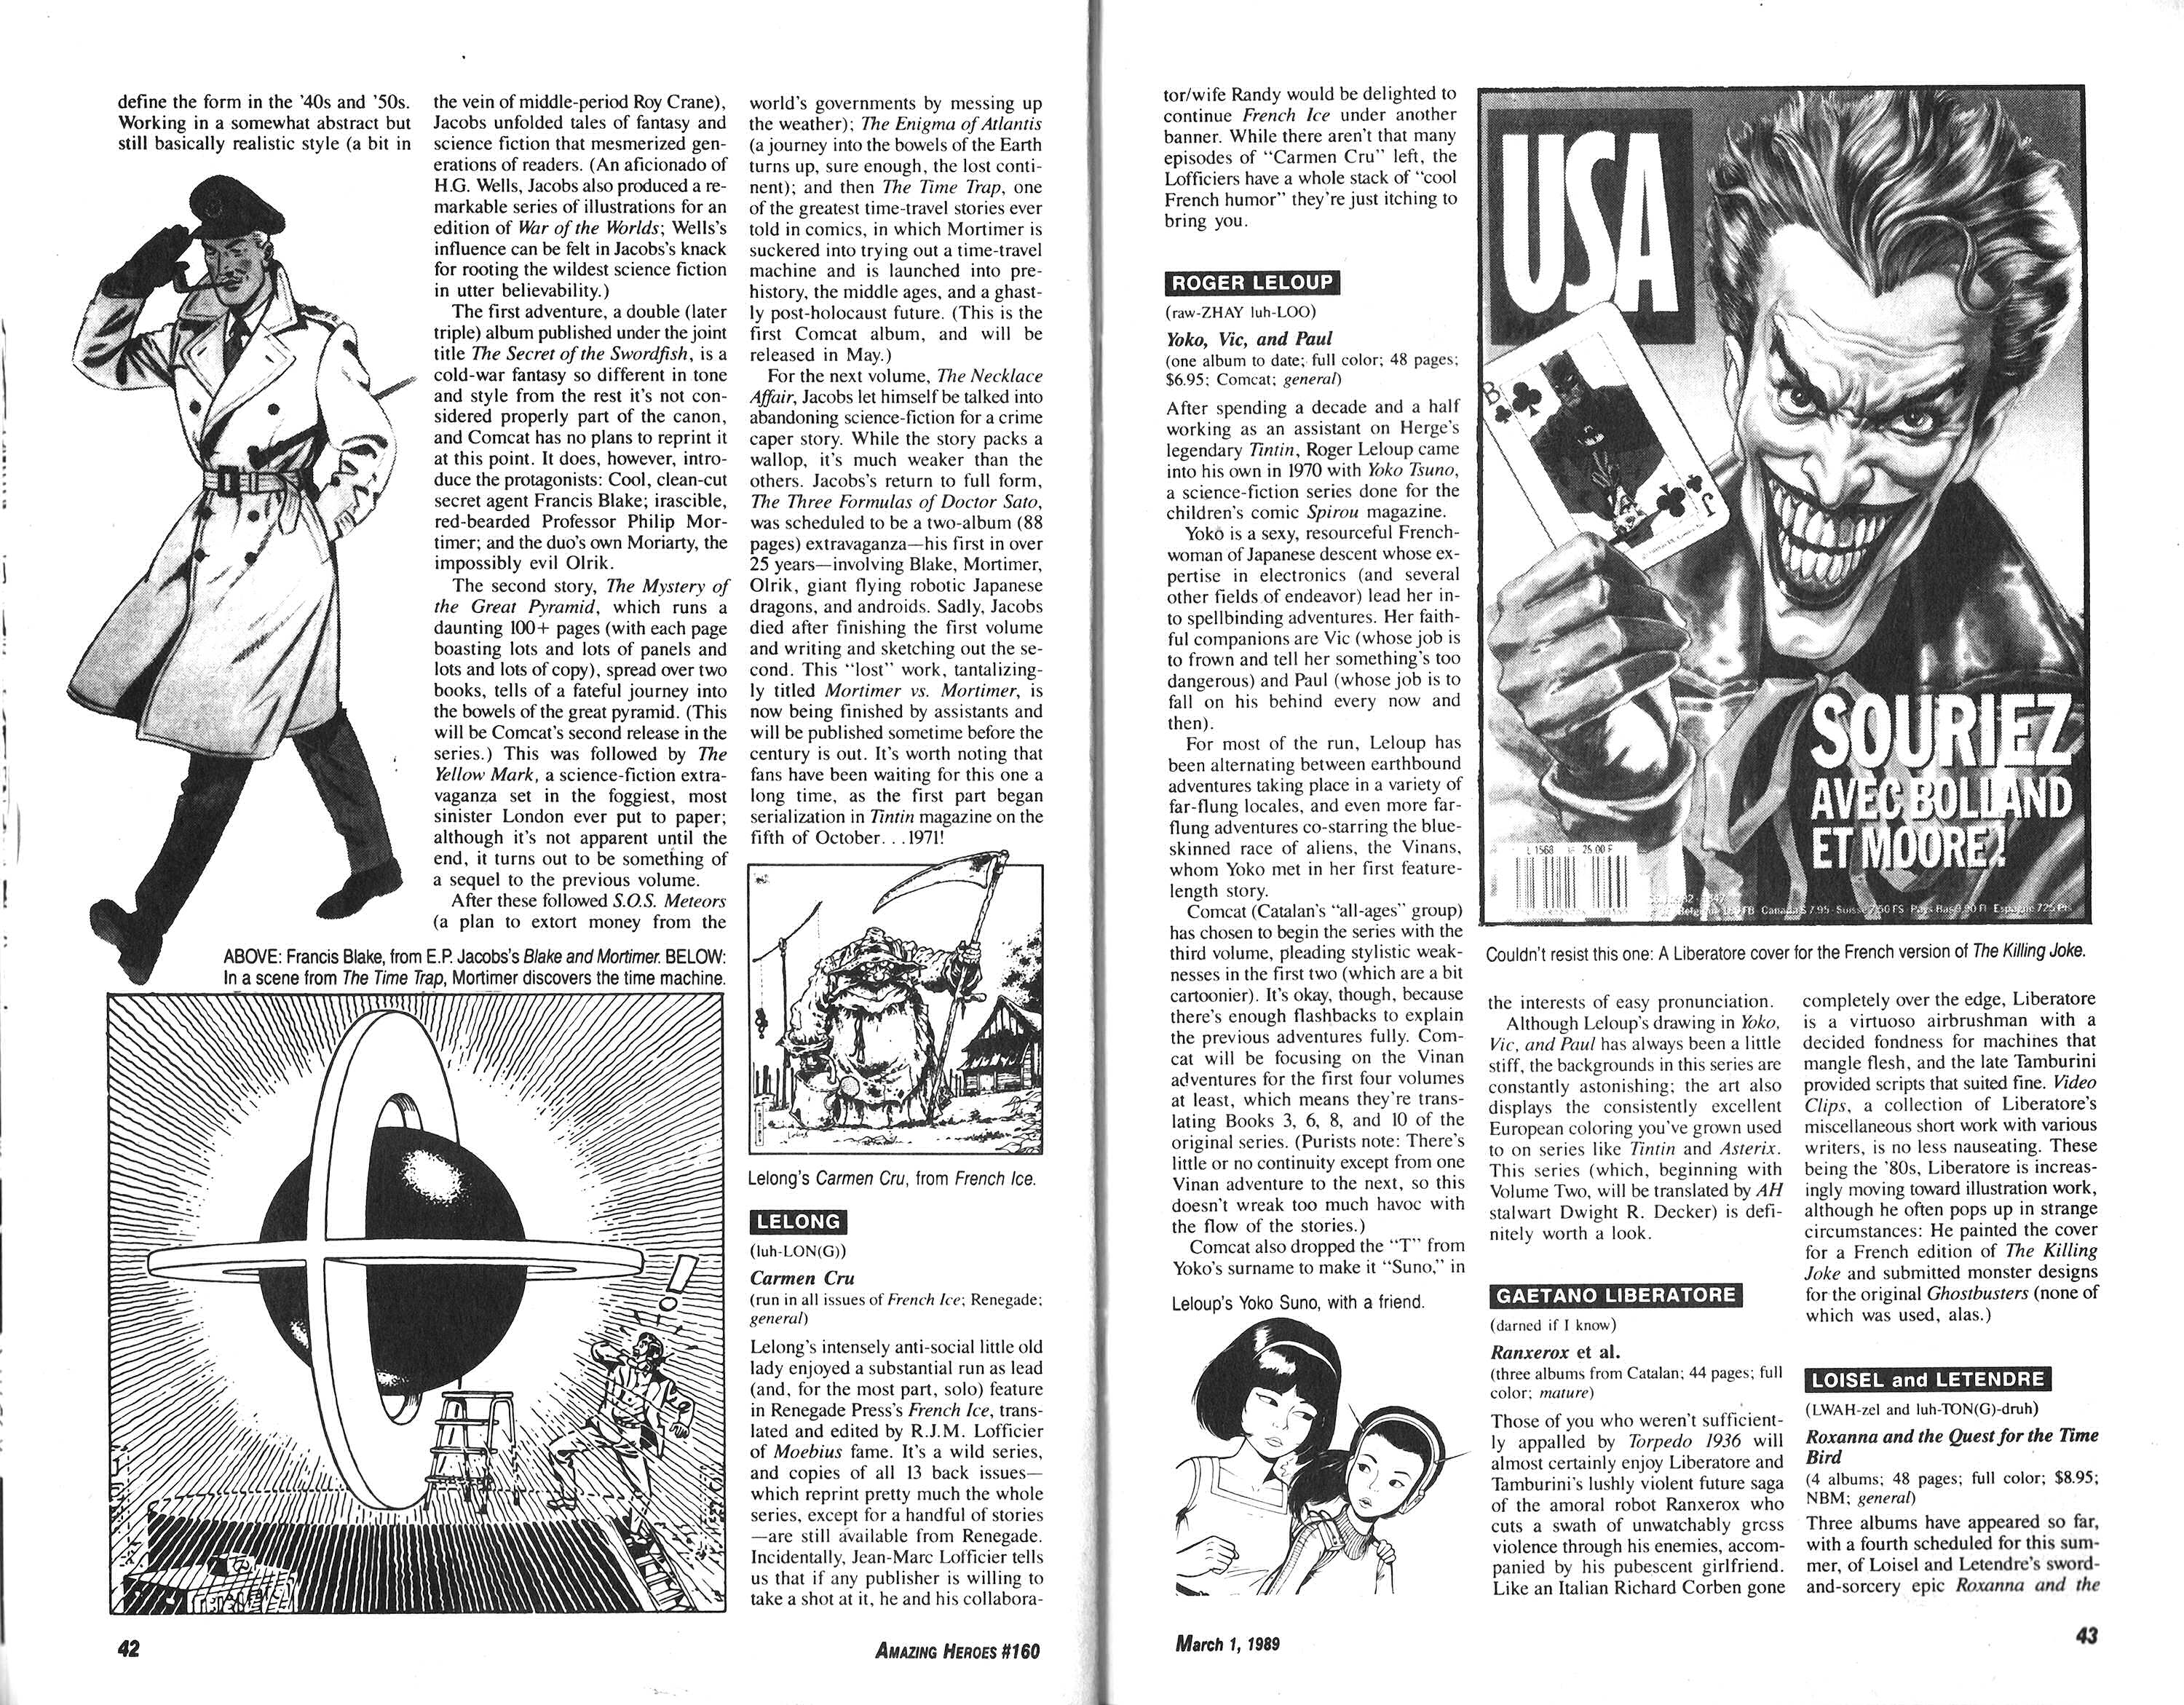 Read online Amazing Heroes comic -  Issue #160 - 22